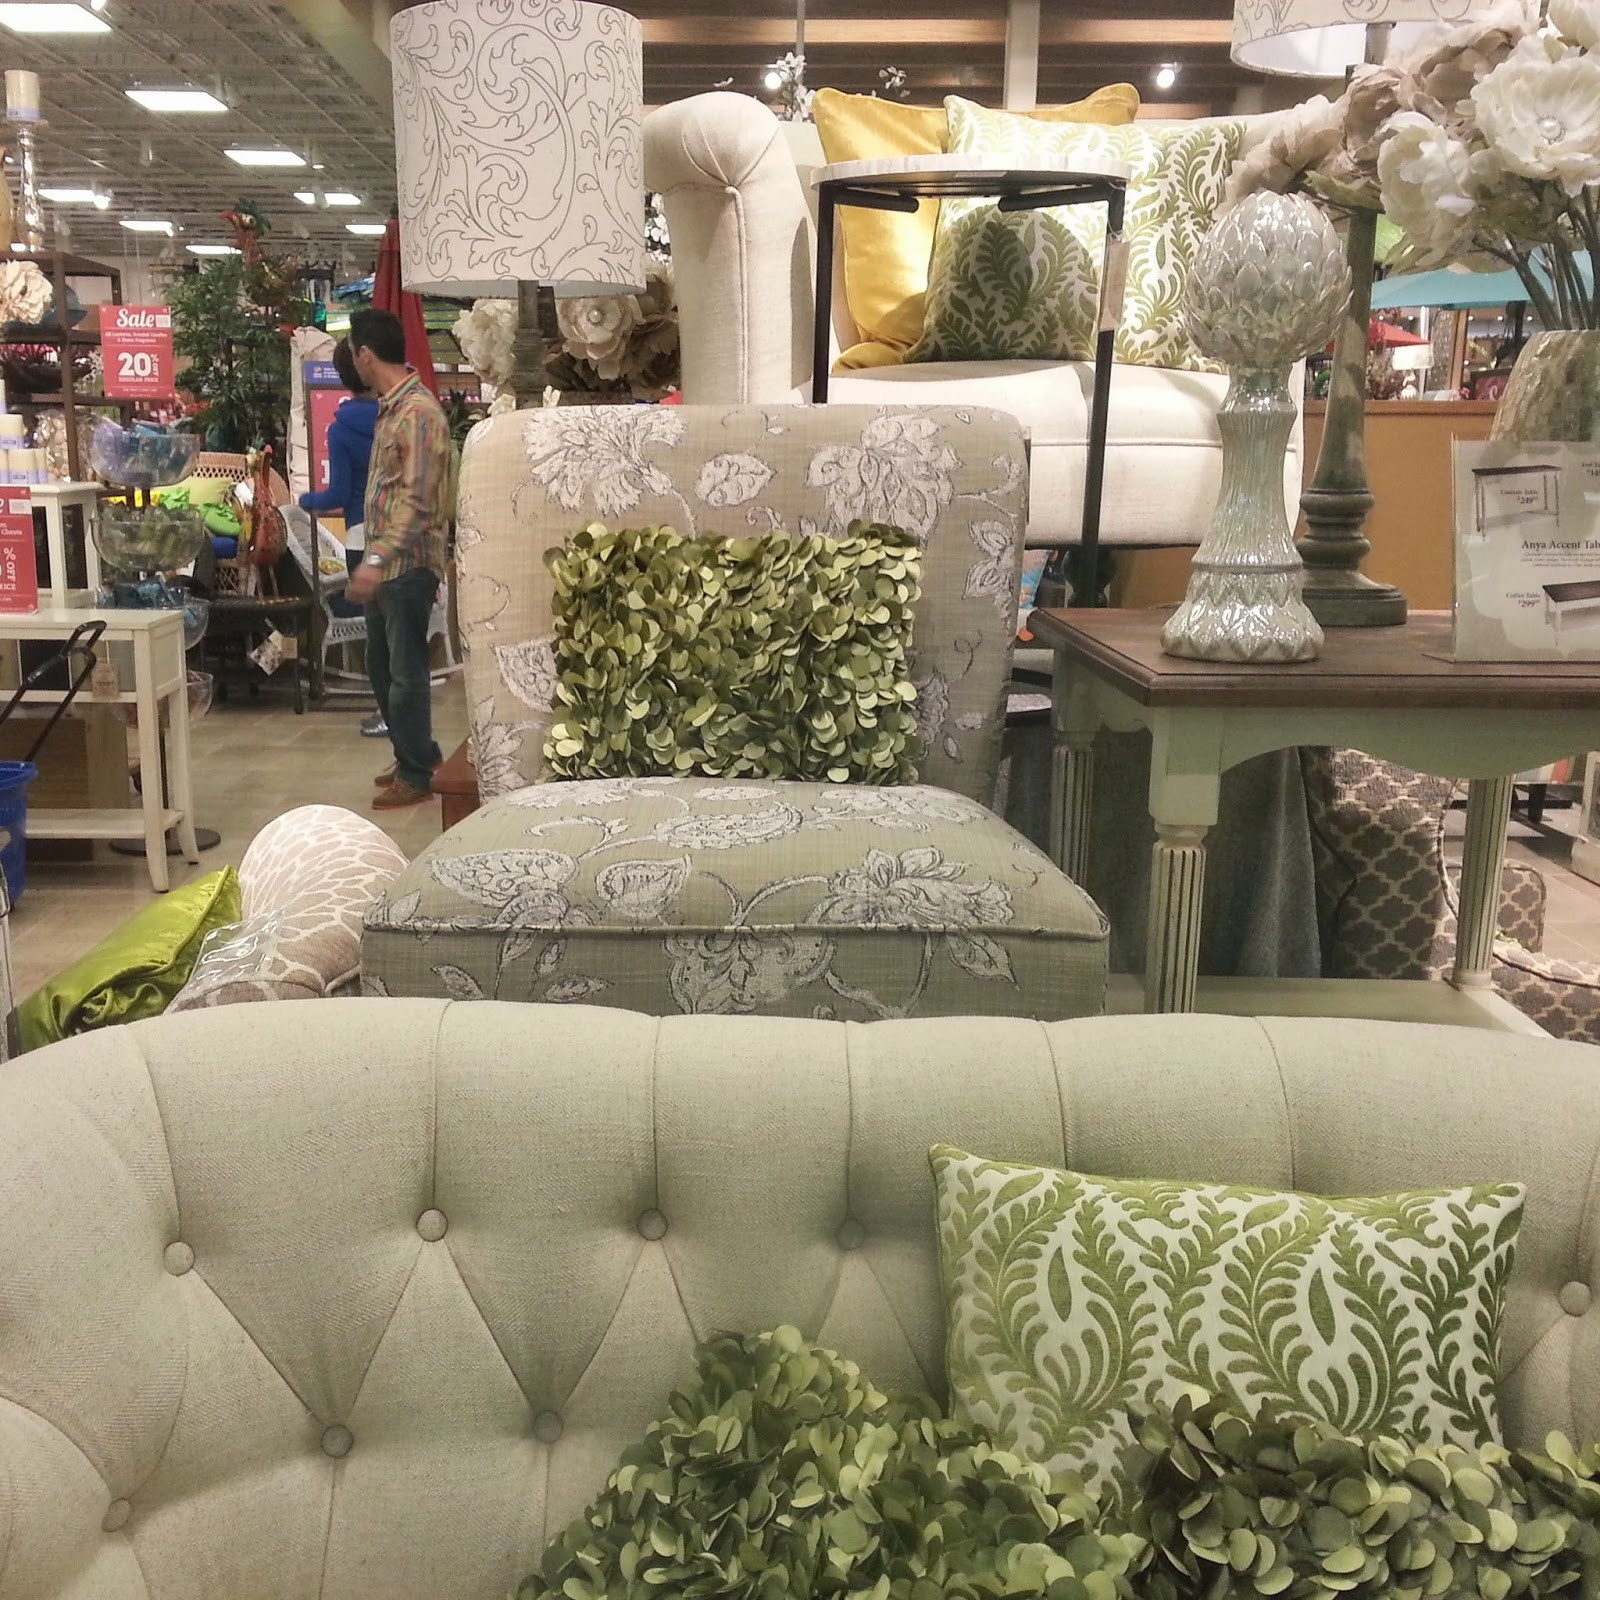 Pier 1 Imports Home Office. For Those Unfamiliar, Pier 1 Carries Furniture,  Gifts